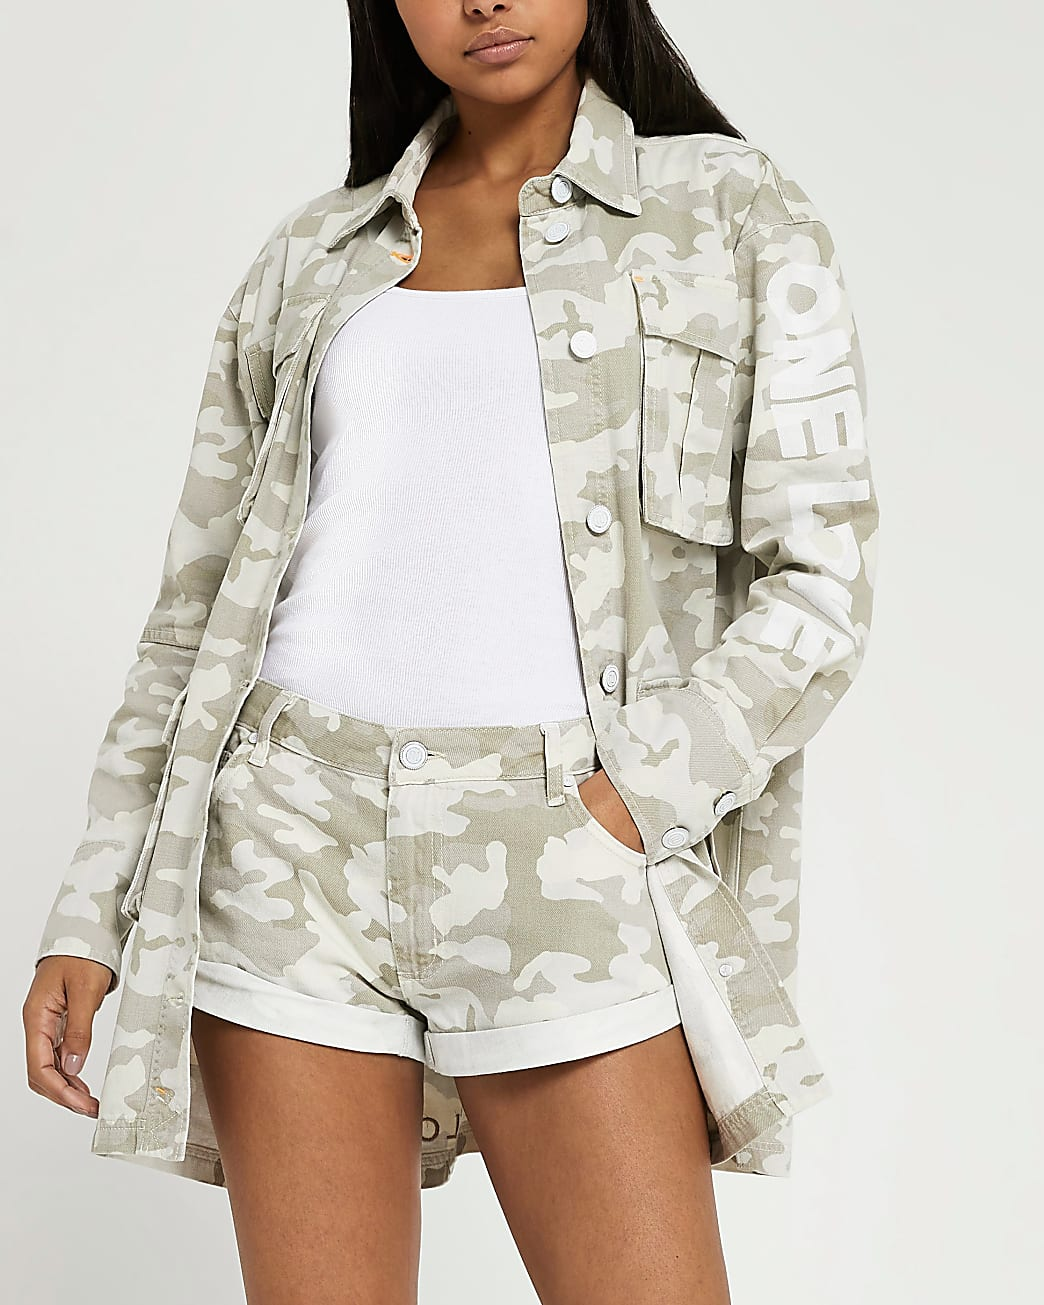 Beige embroidered turn up camo print shorts